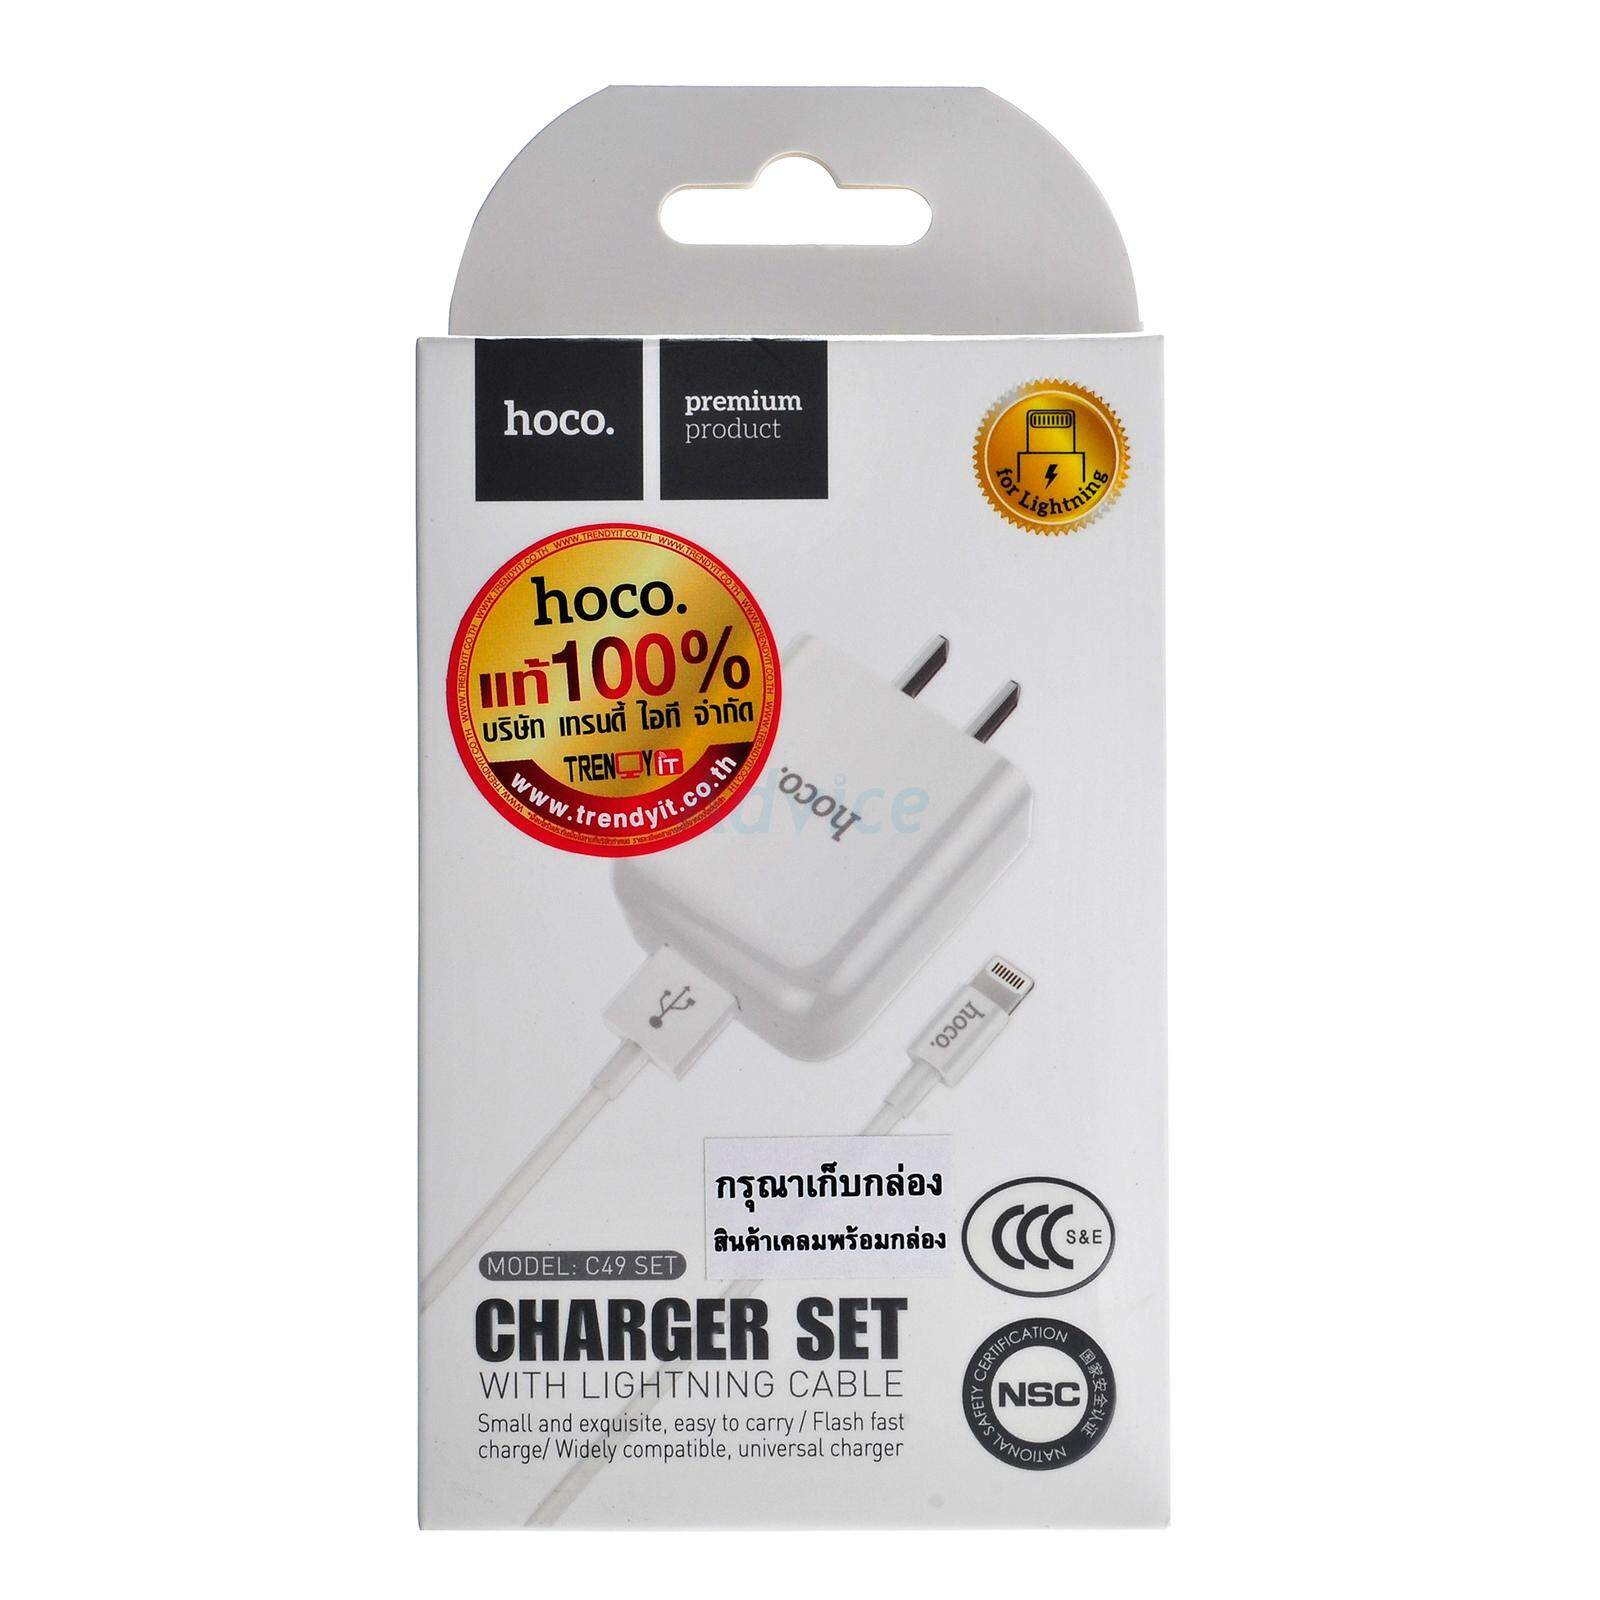 Adapter USB Charger + Lightning Cable (C49) 'HOCO' White